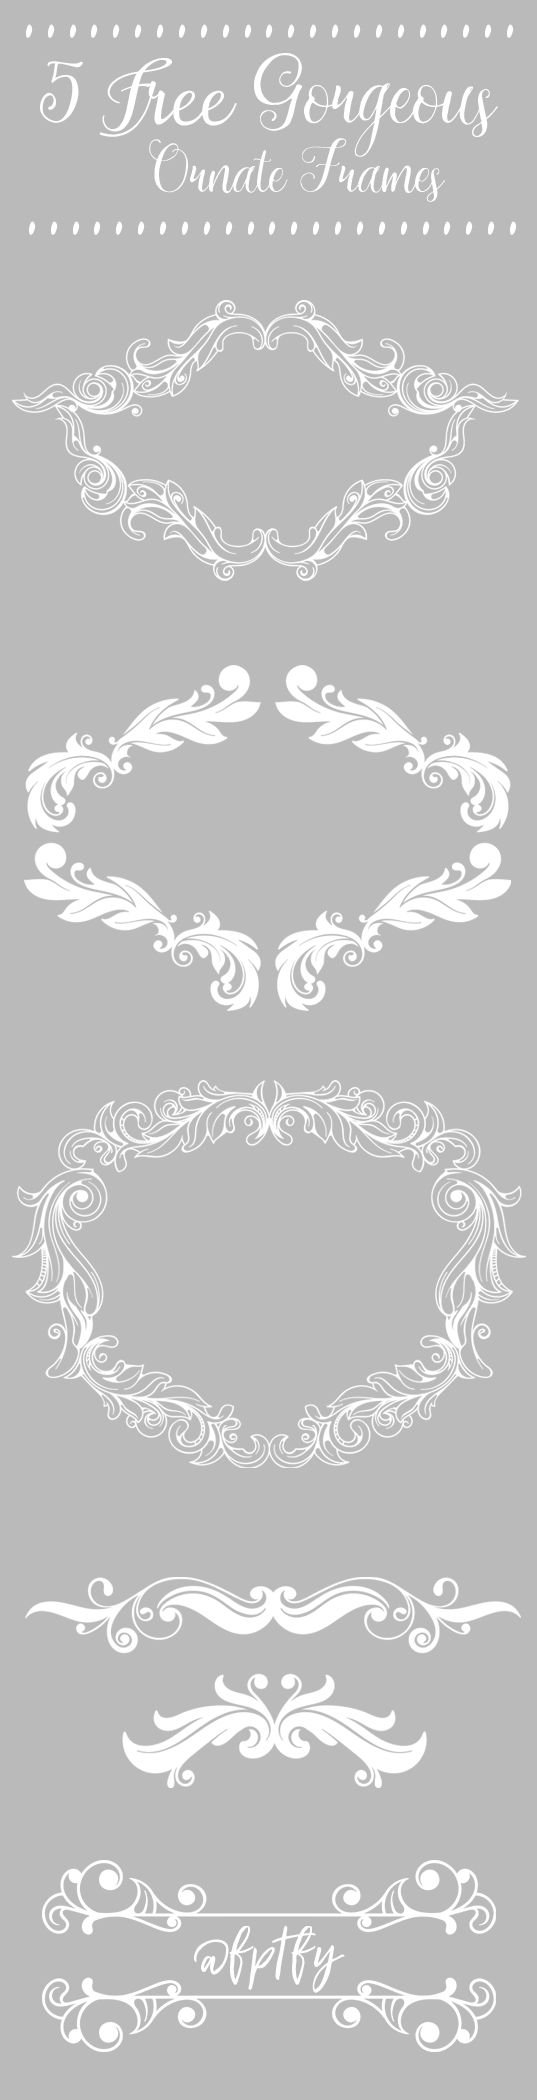 5 Free Gorgeous Large Ornate Frames-CU-ok! - Free Pretty Things For You